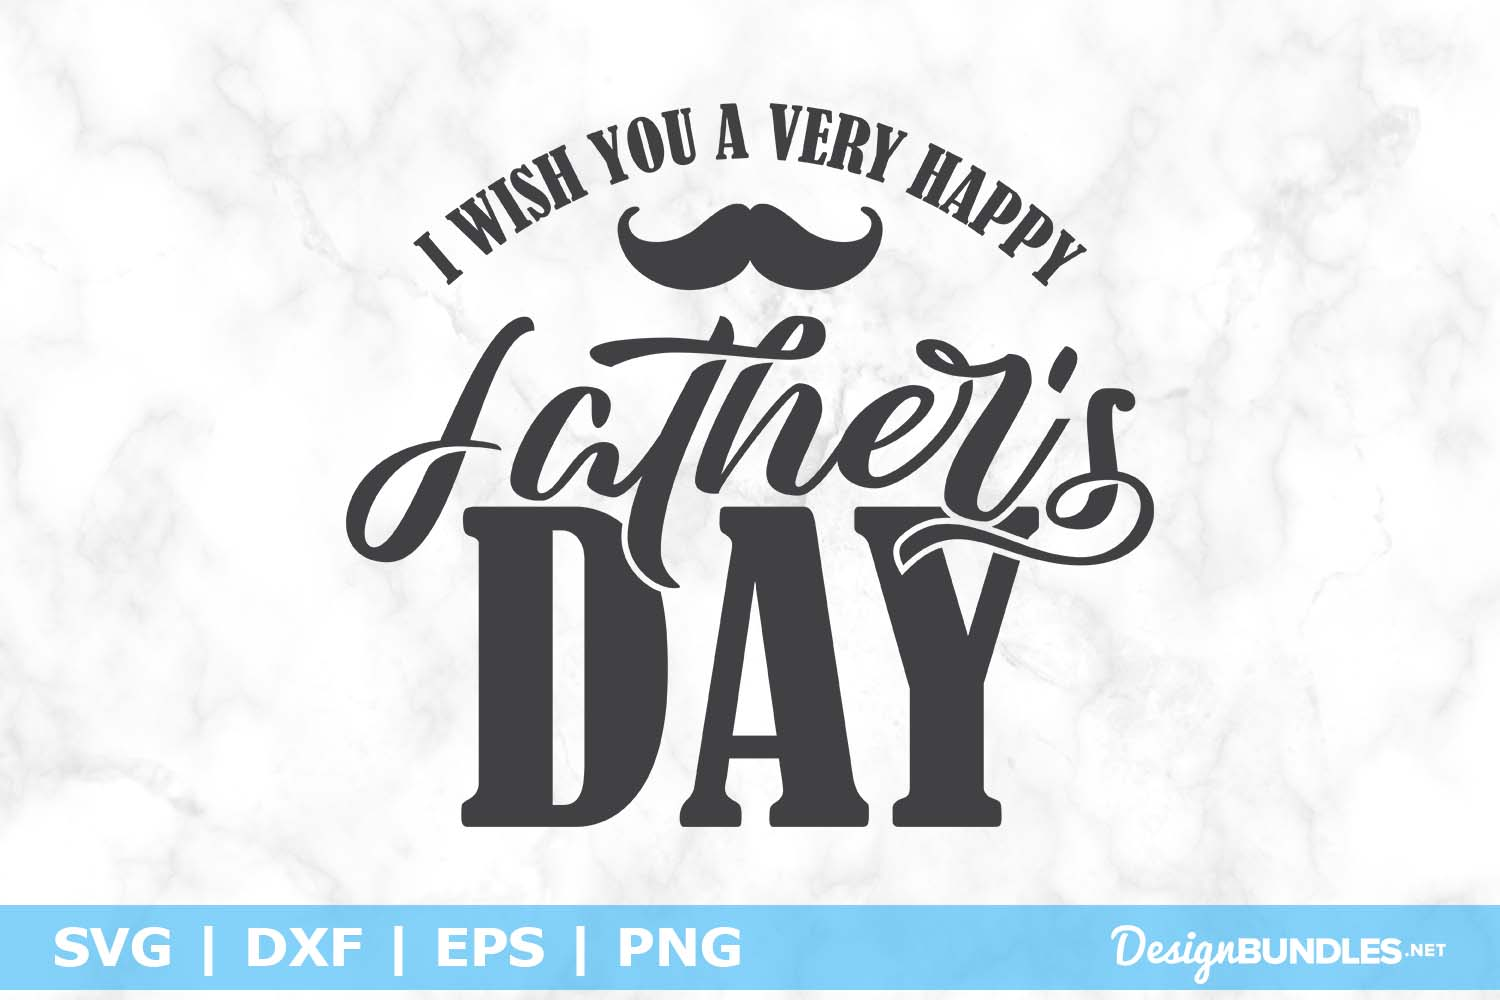 I Wish You A Very Happy Father's Day SVG File example image 1